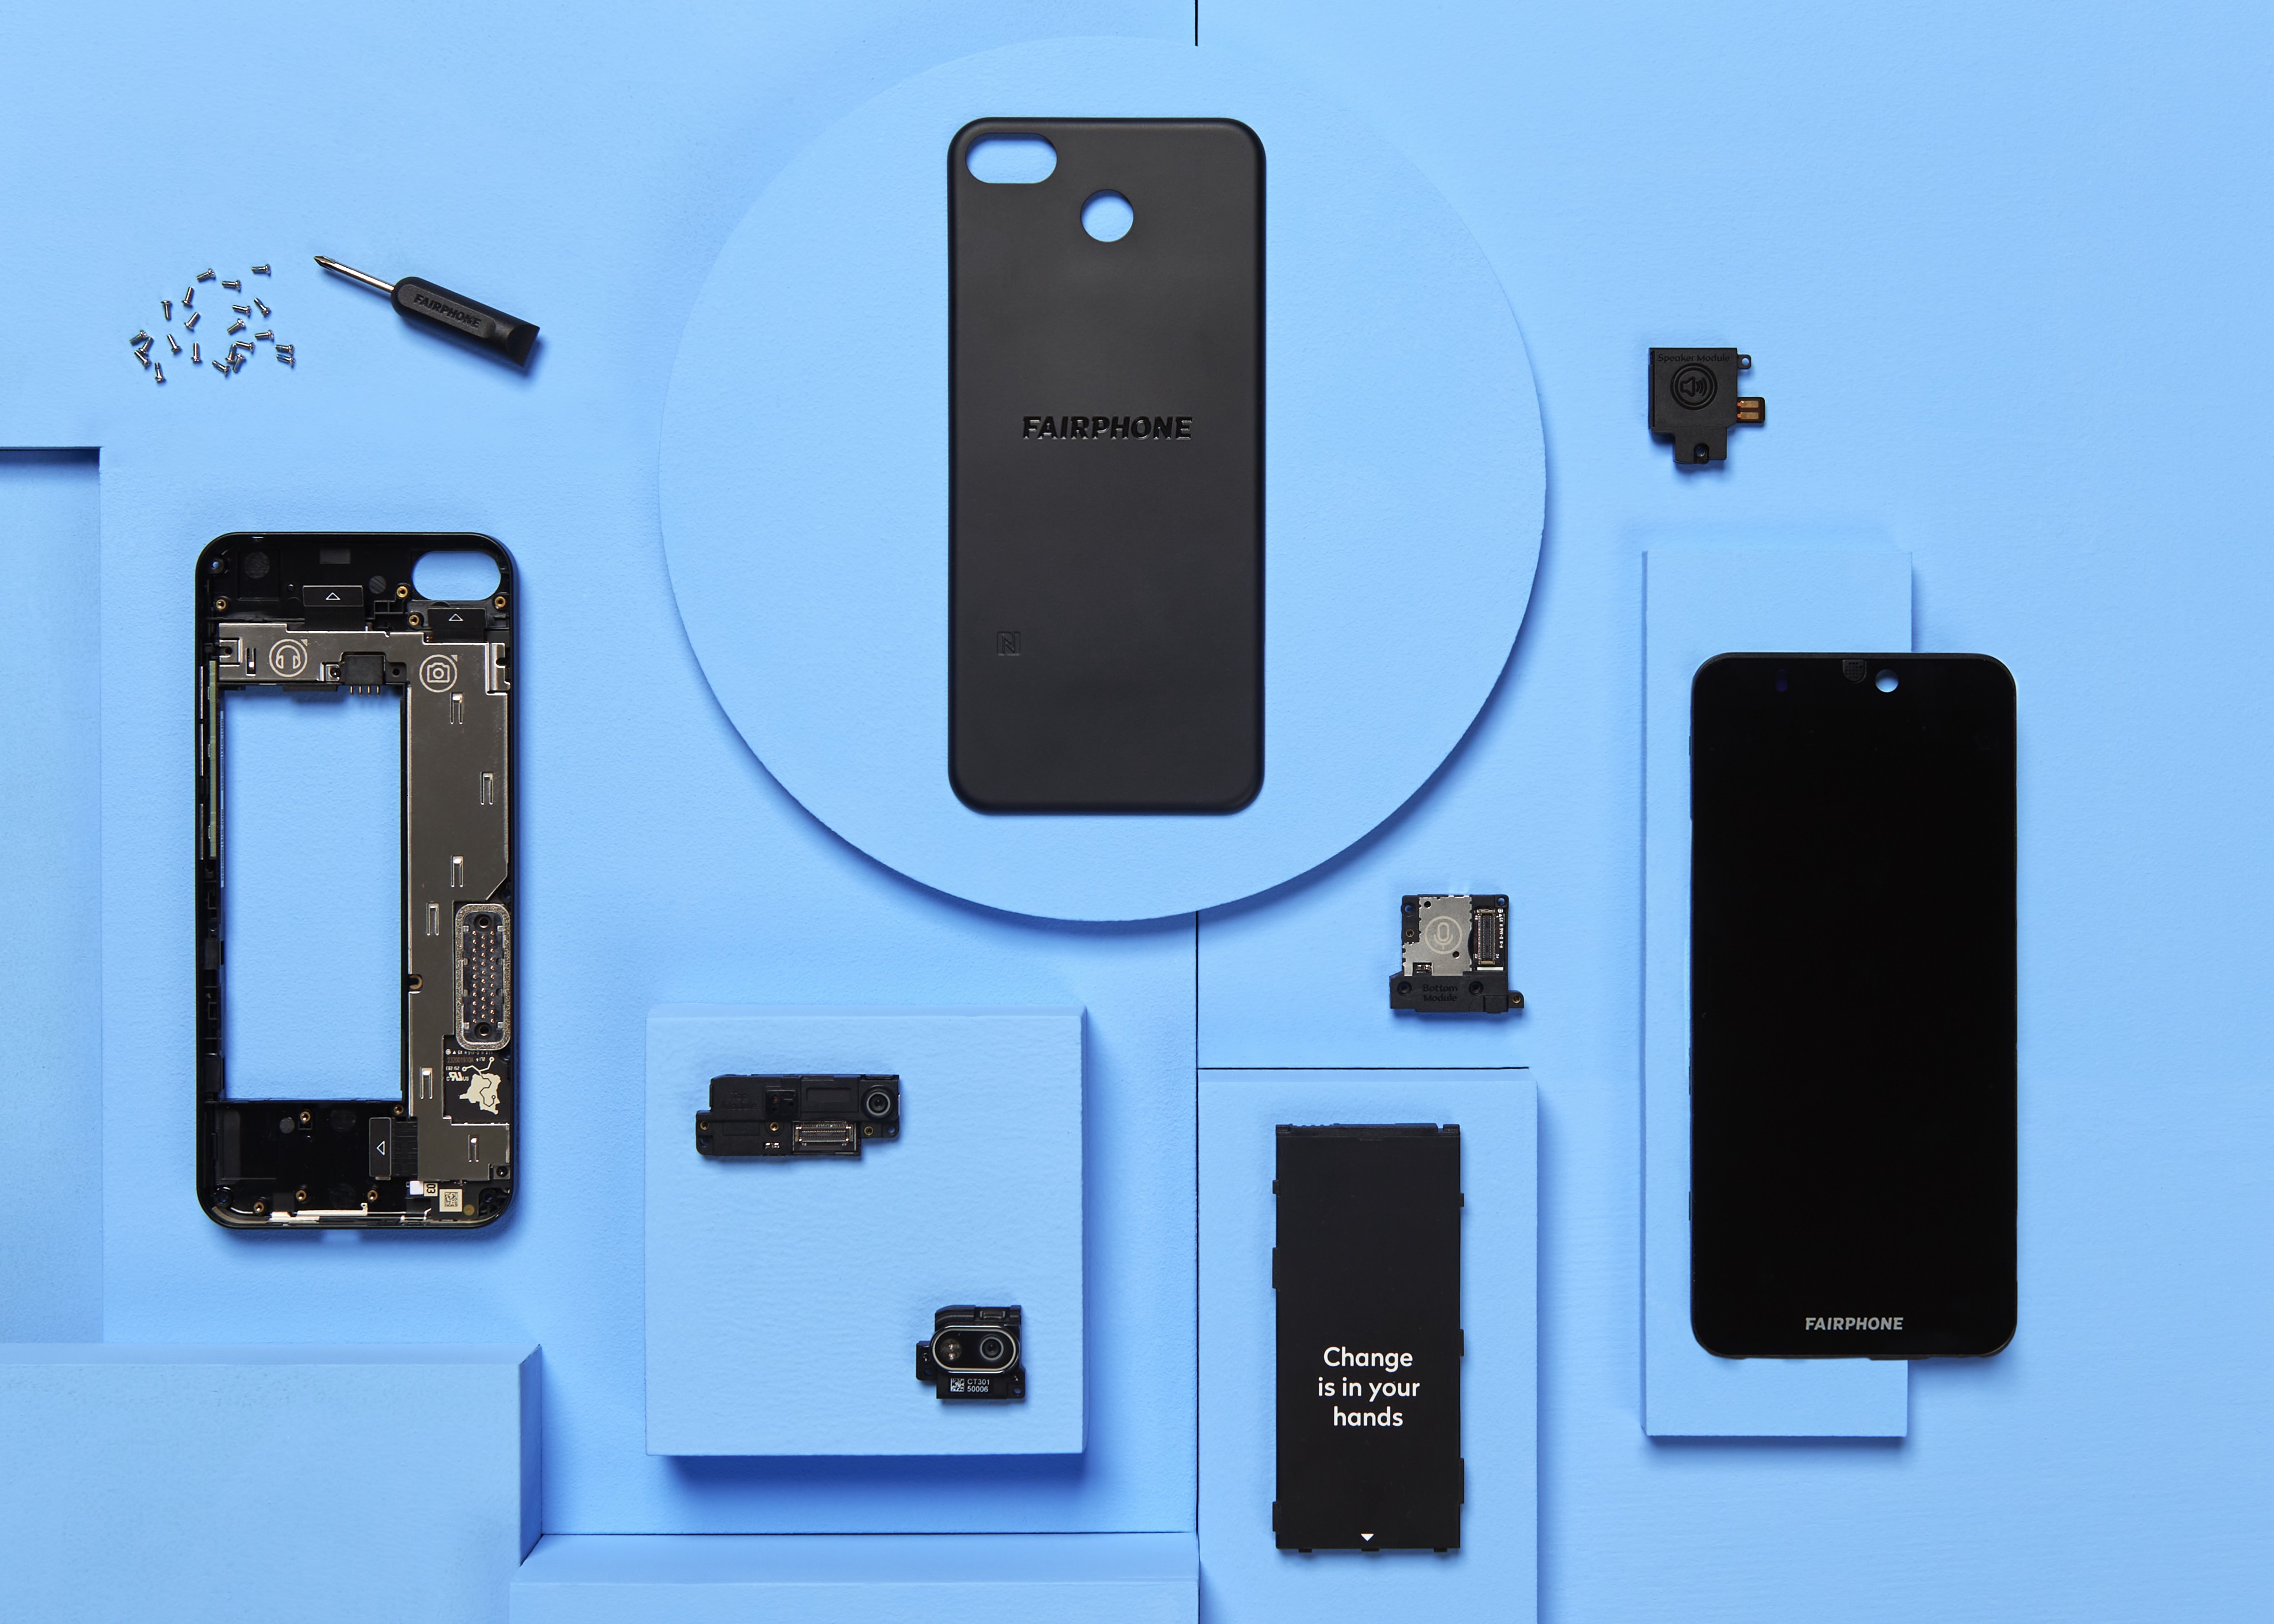 The Fairphone, shown with all its different parts